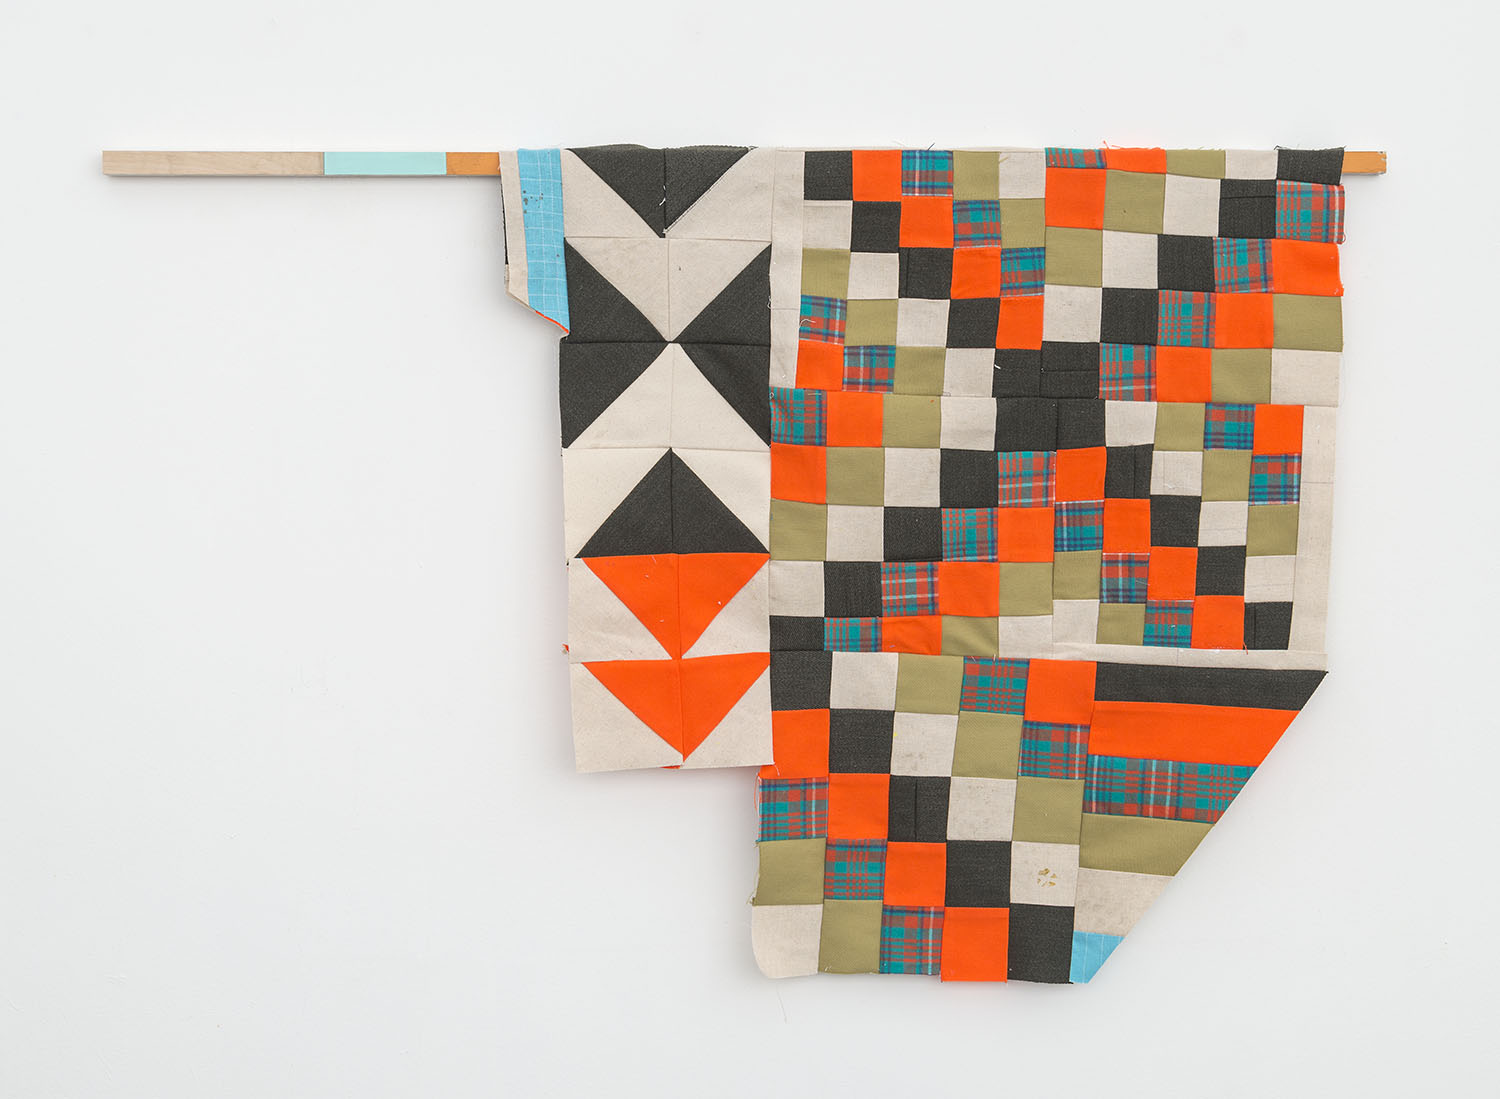 Hunting Season  , 2018 Acrylic, colored pencil, cotton, canvas, wool and wood 28 x 42 inches (71.1 x 106.7 cm)